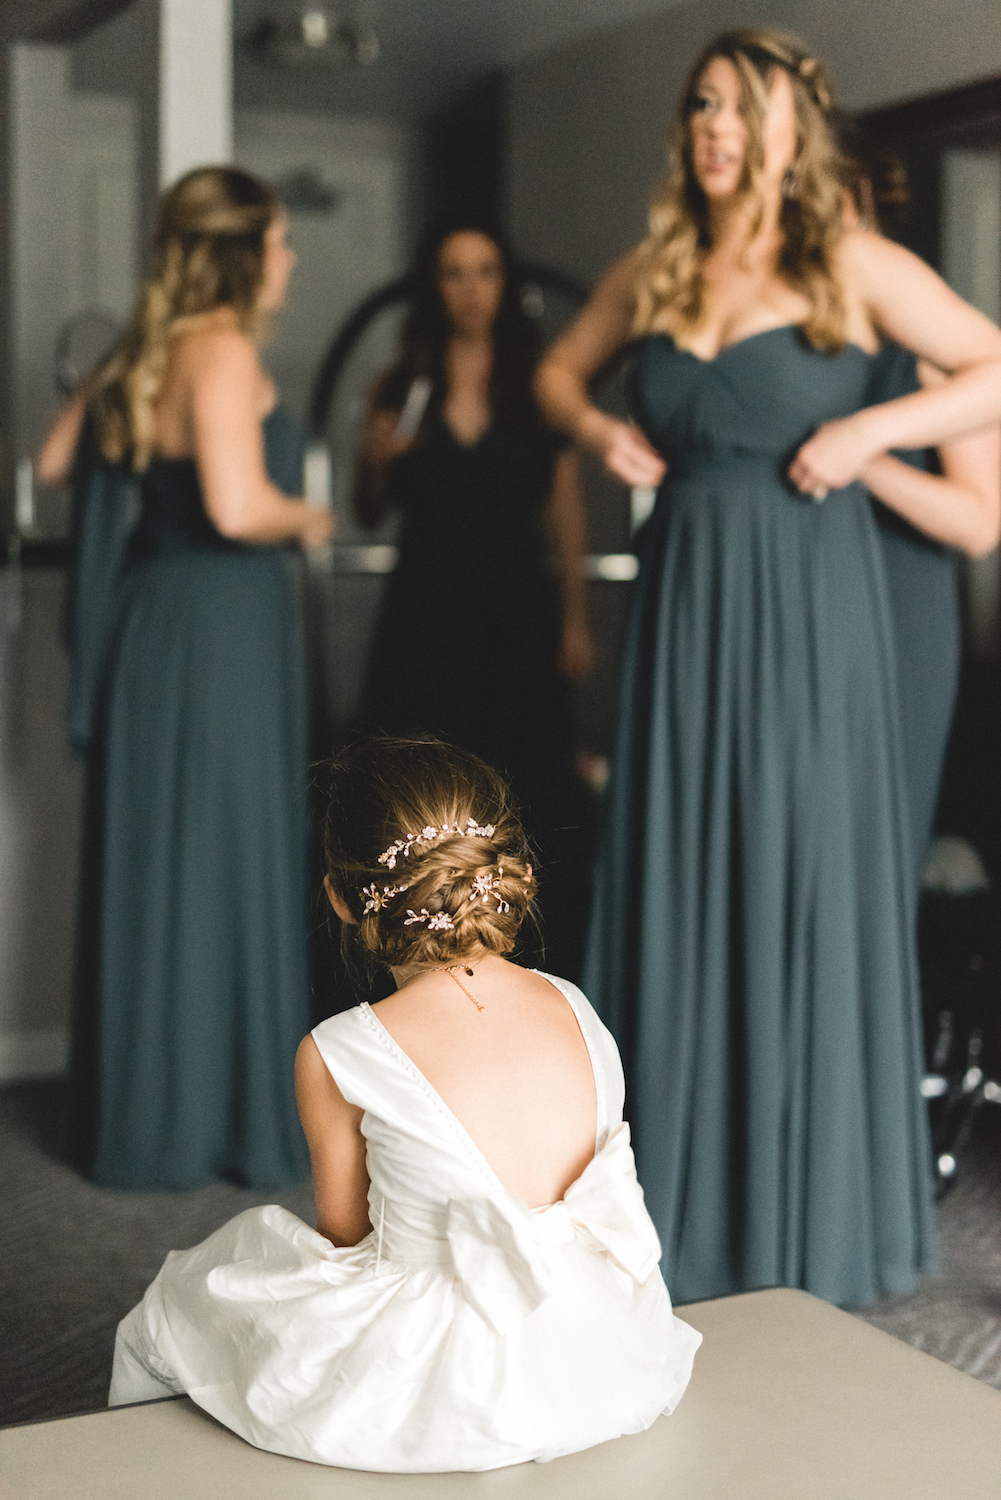 If there was such a thing as a perfect flower girl, Brielle found that in adorable Abbey. She was loving, helpful...and youthfully patient.